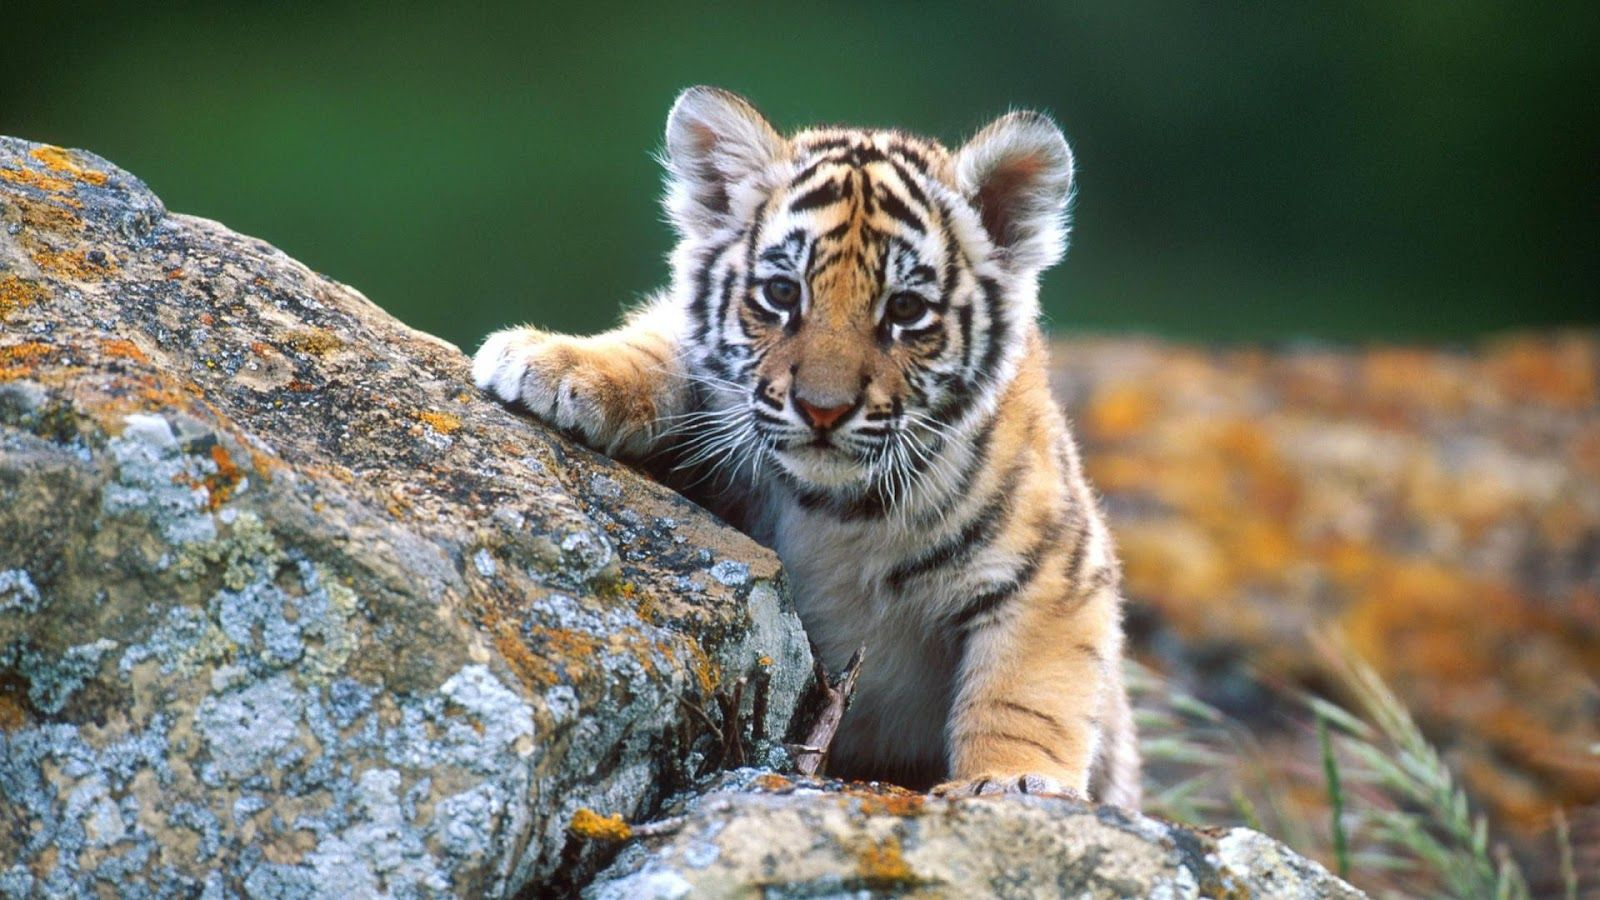 Wild Animals Hd Wallpaper Cute Animals Download: Free Desktop Wallpapers